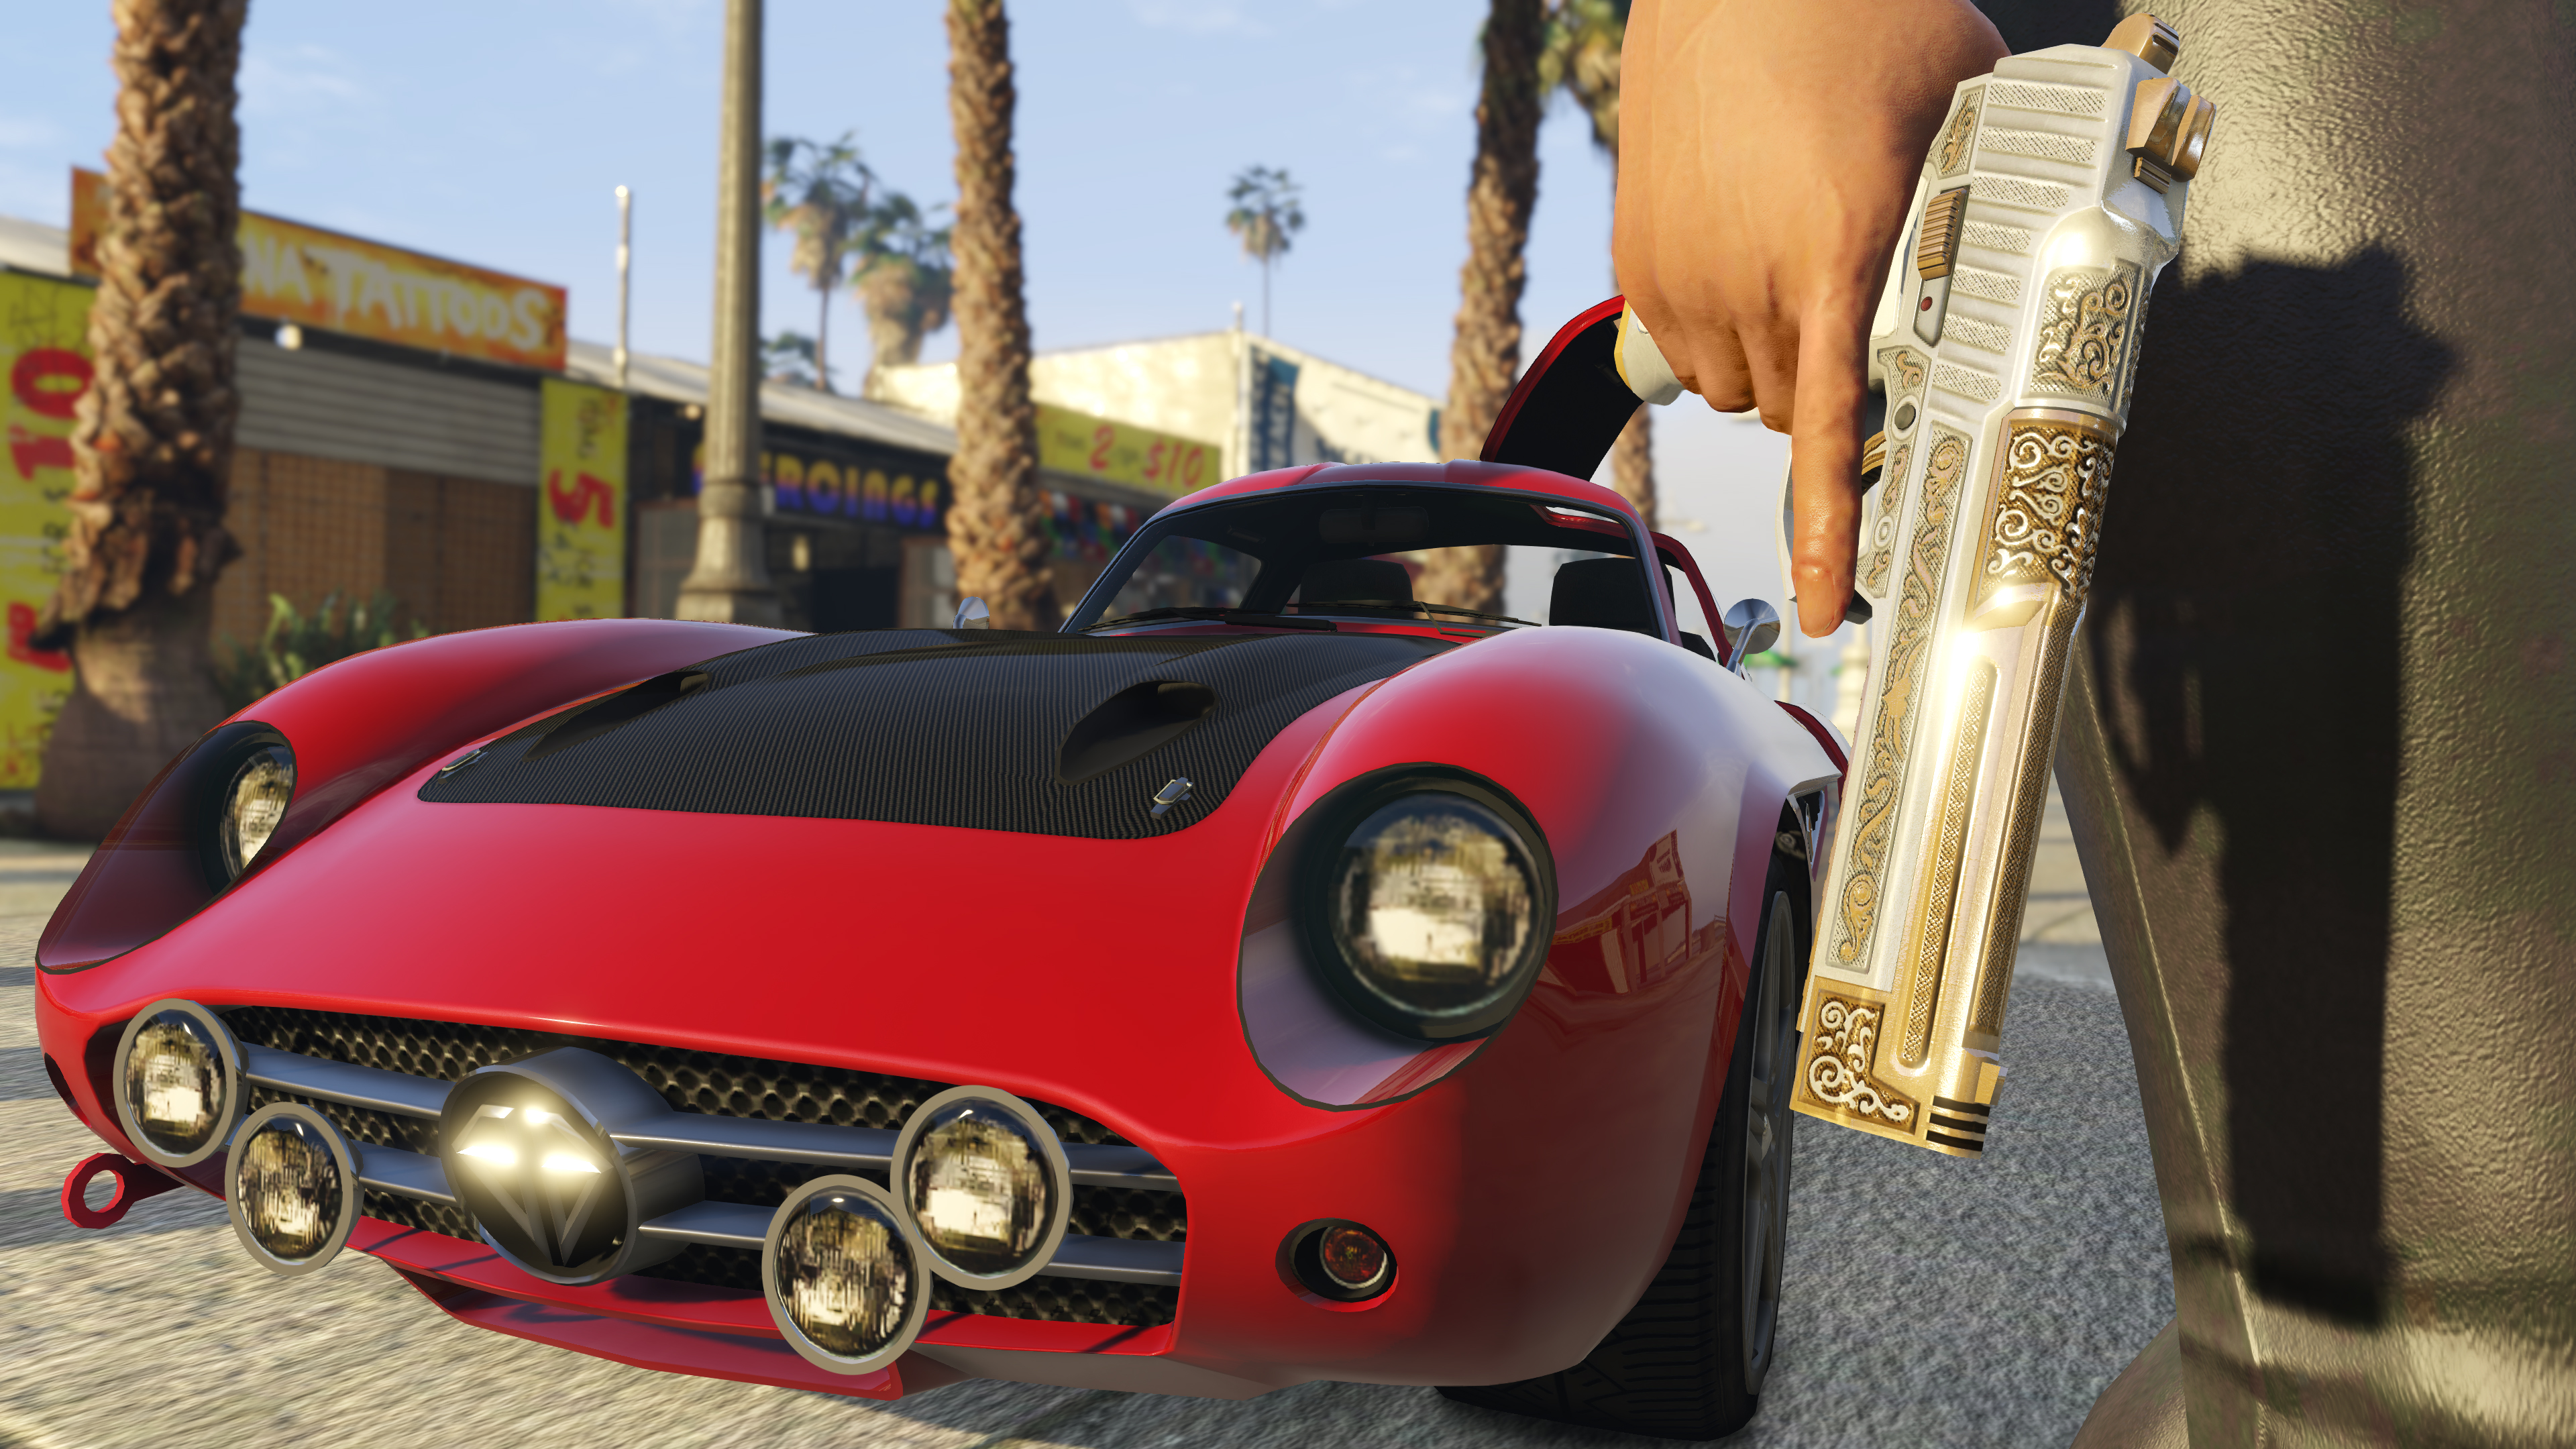 Asked & Answered: The Rockstar Editor, GTA Online Updates, PC Mods